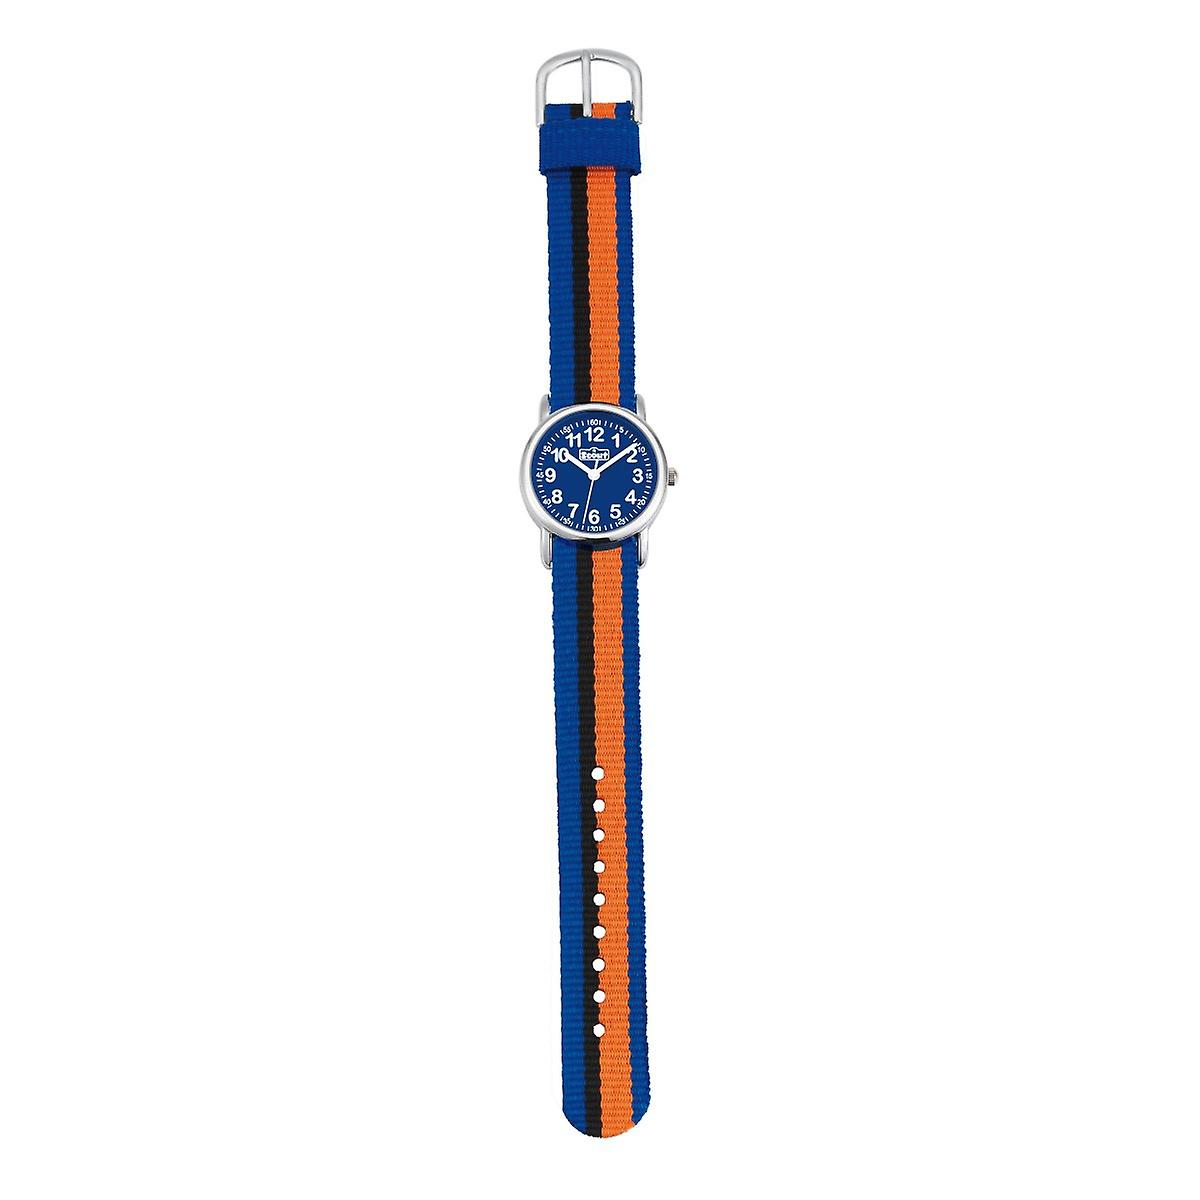 Scout child watch learning start up cool blue multi boys Watch 280304005